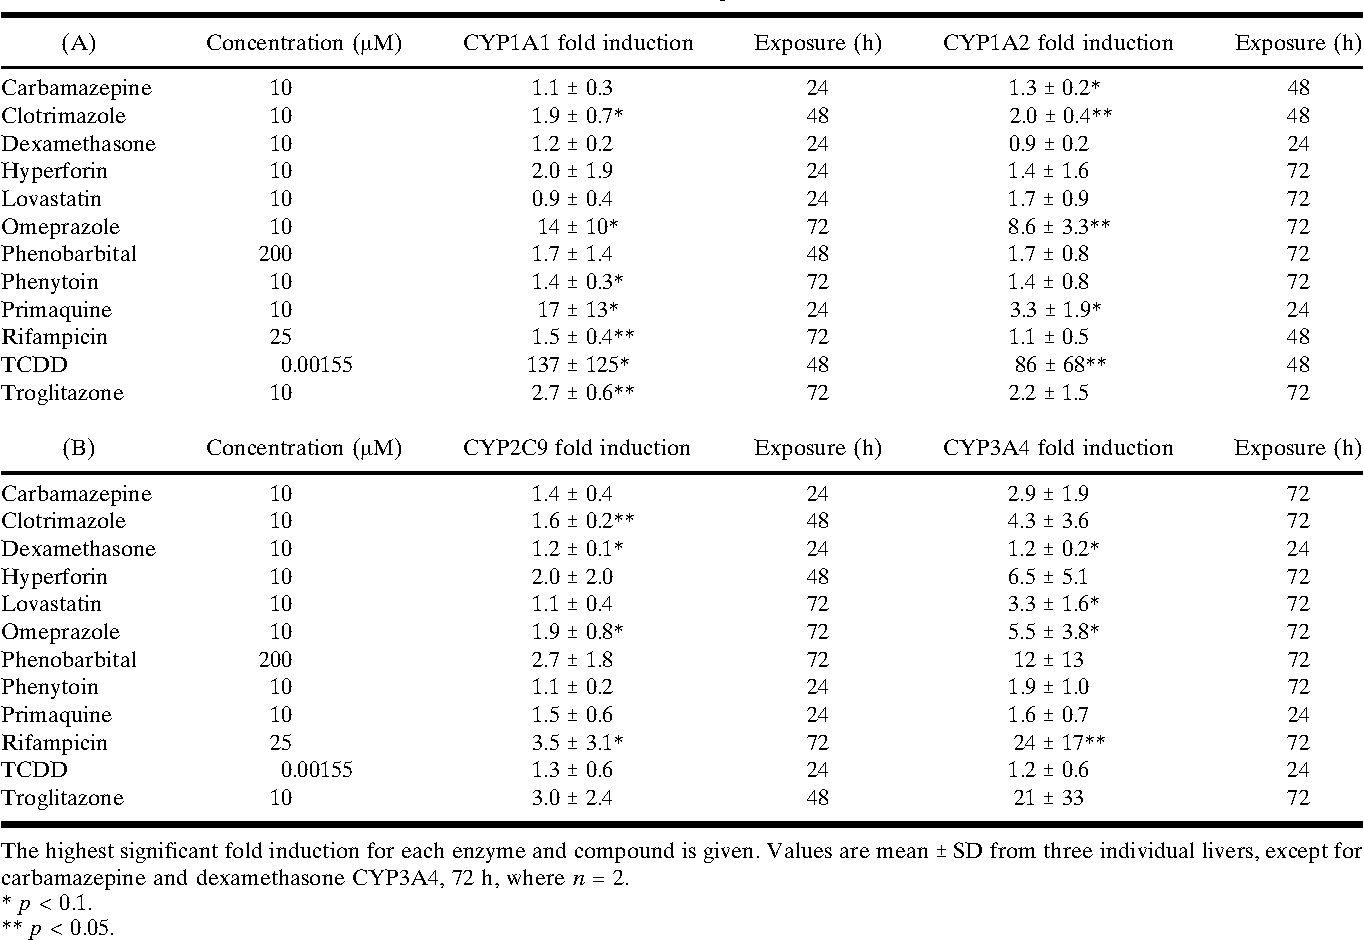 Table III. Fold Induction of CYP1A1 and 1A2 (A) and CYP2C9 and 3A4 (B) mRNA in Human Liver Slices after Incubation with Test Compounds